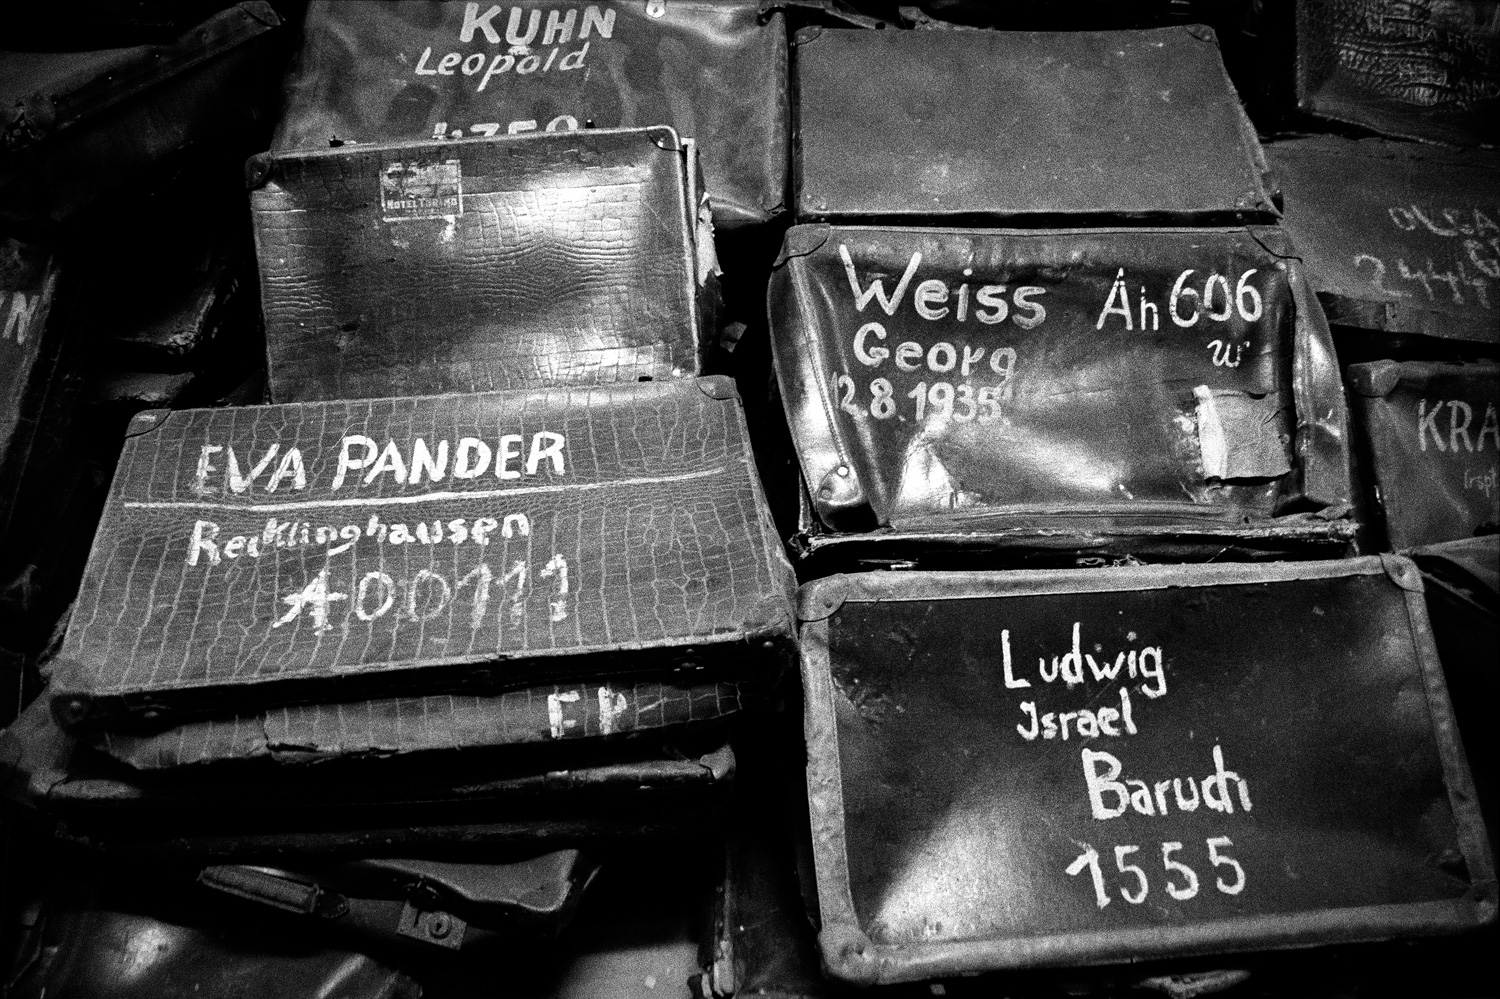 44 Luggage-Auschwitz-Poland.jpg